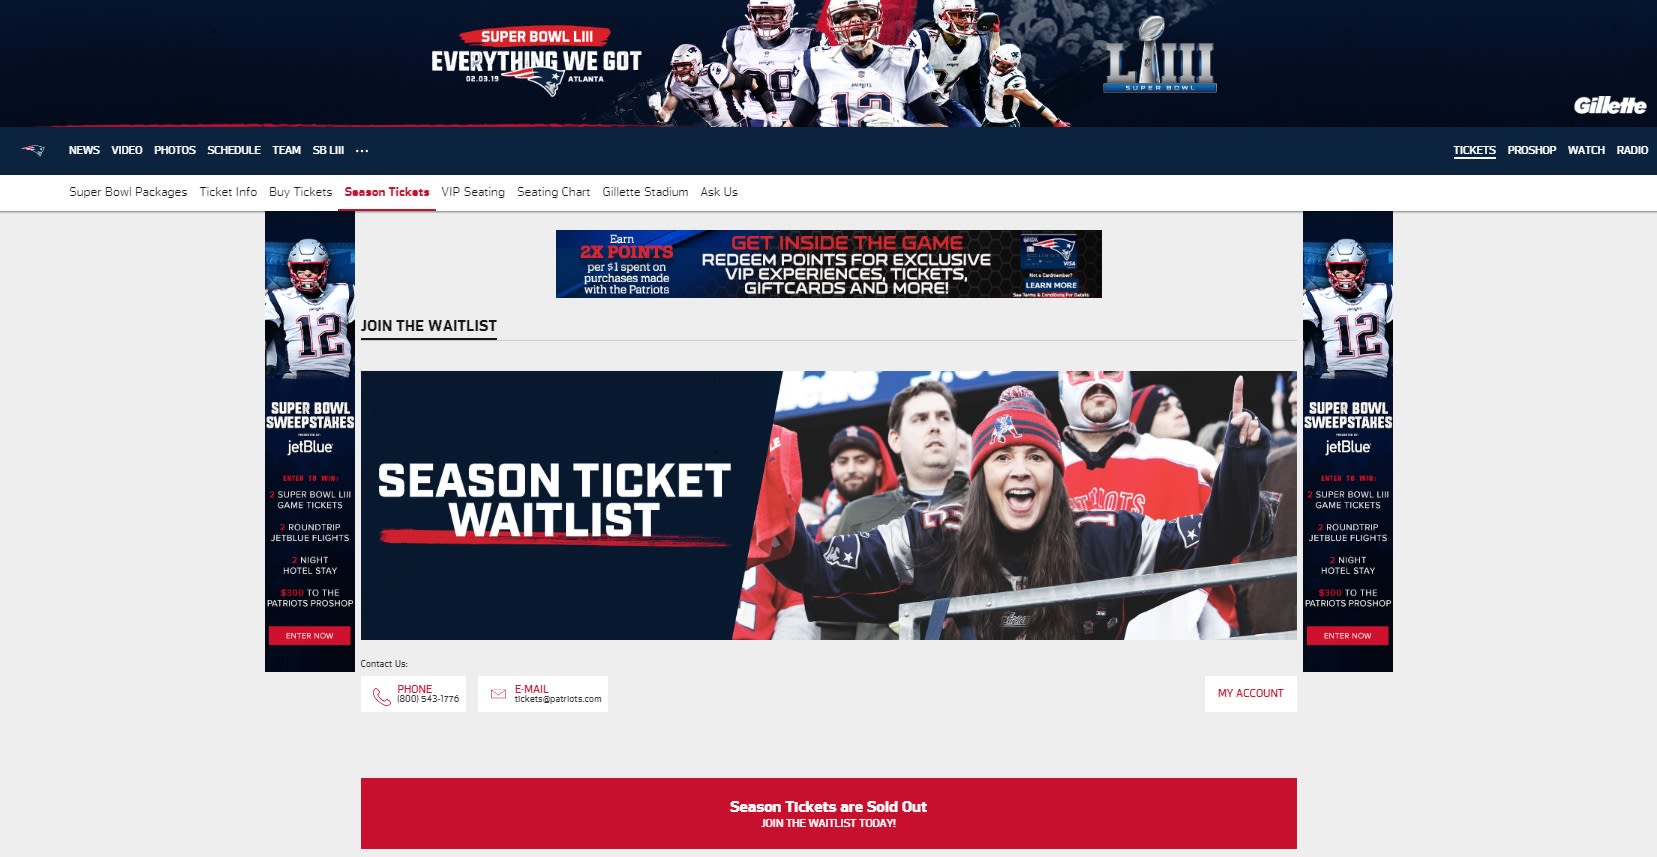 ONE TIME USE HANDOUT: Patriots Season Ticket Page